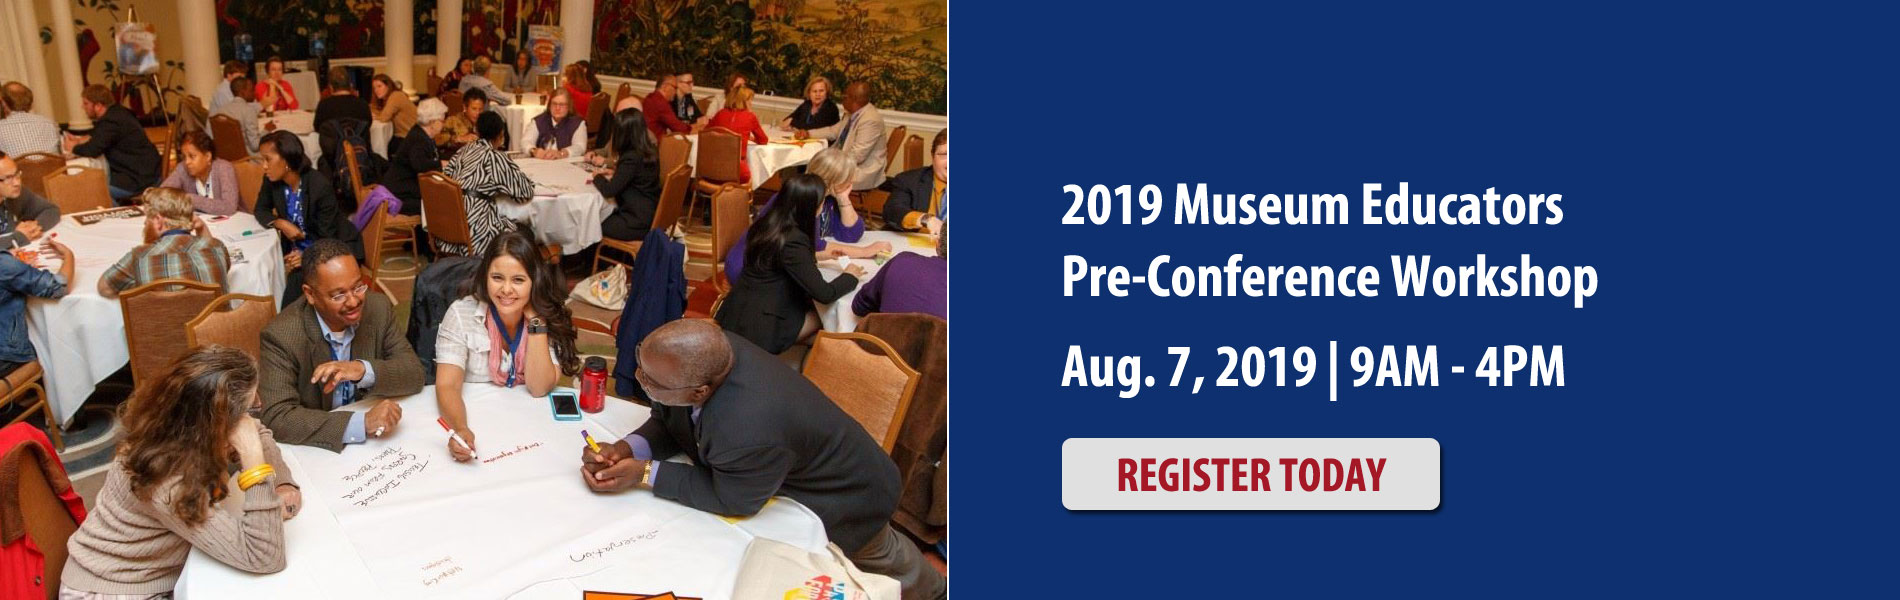 2019 Museum Educators Pre-Conference Workshop